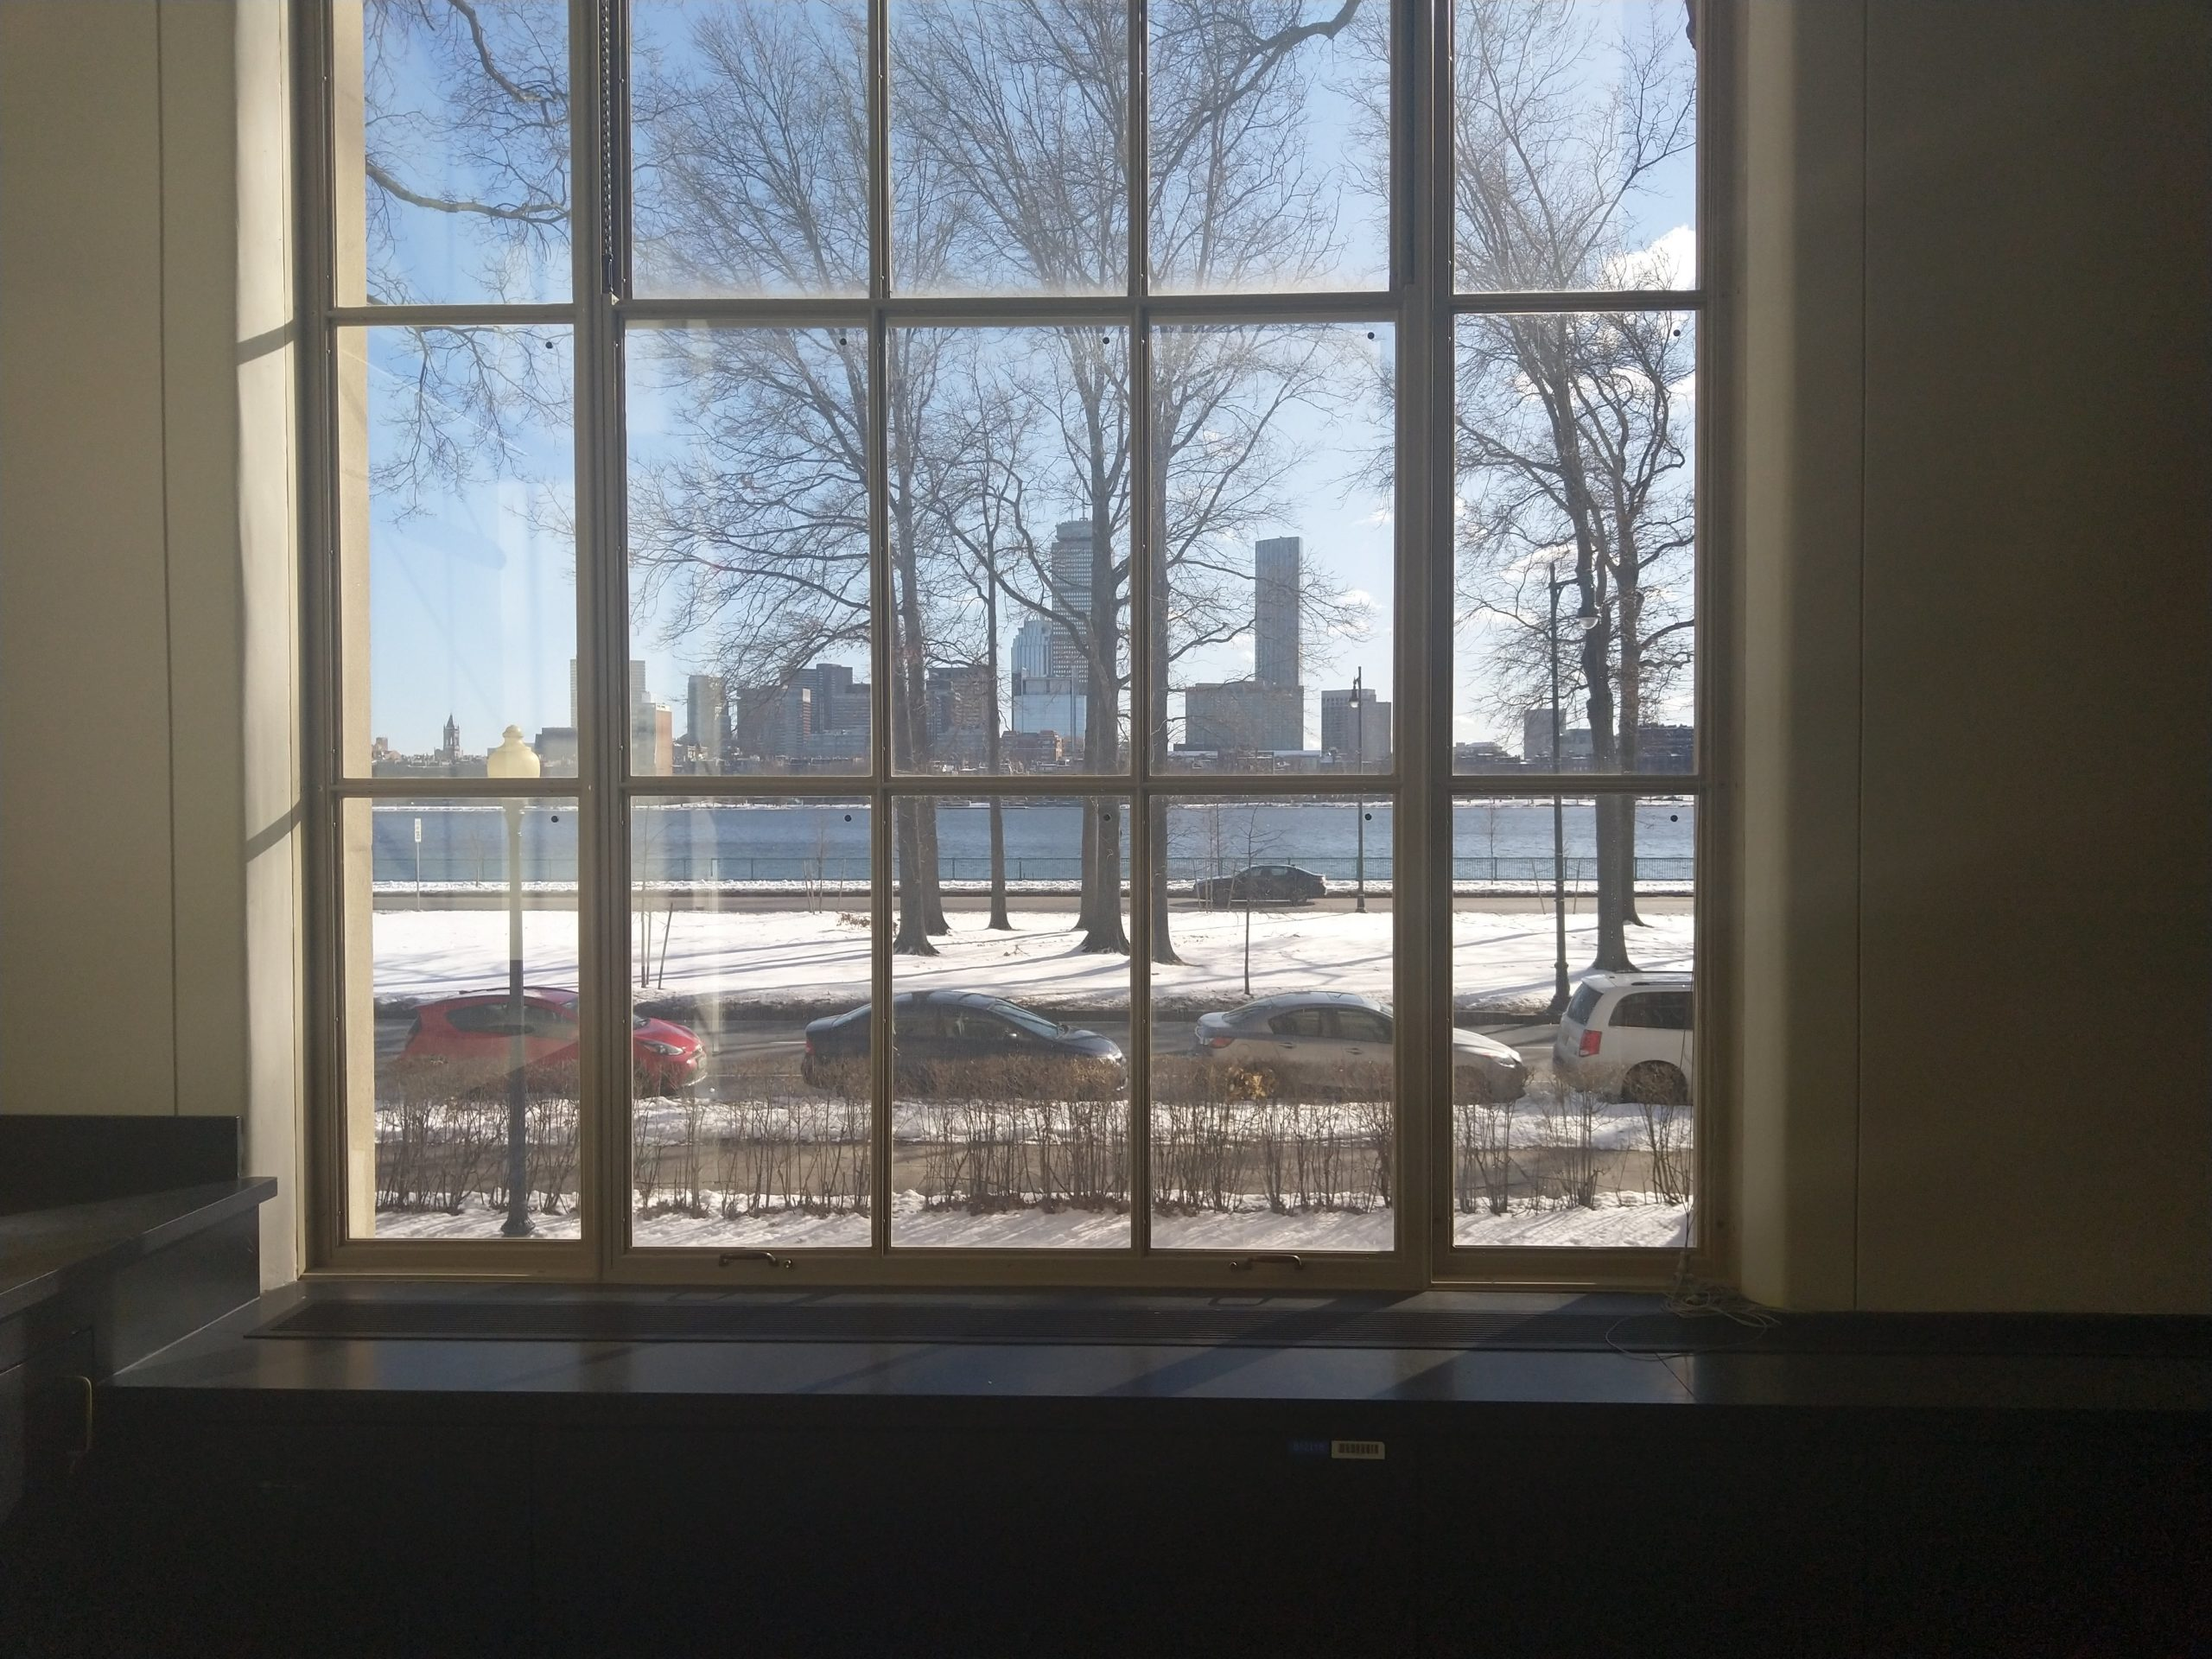 the view outside a window, with the river and the boston skyline in the distance